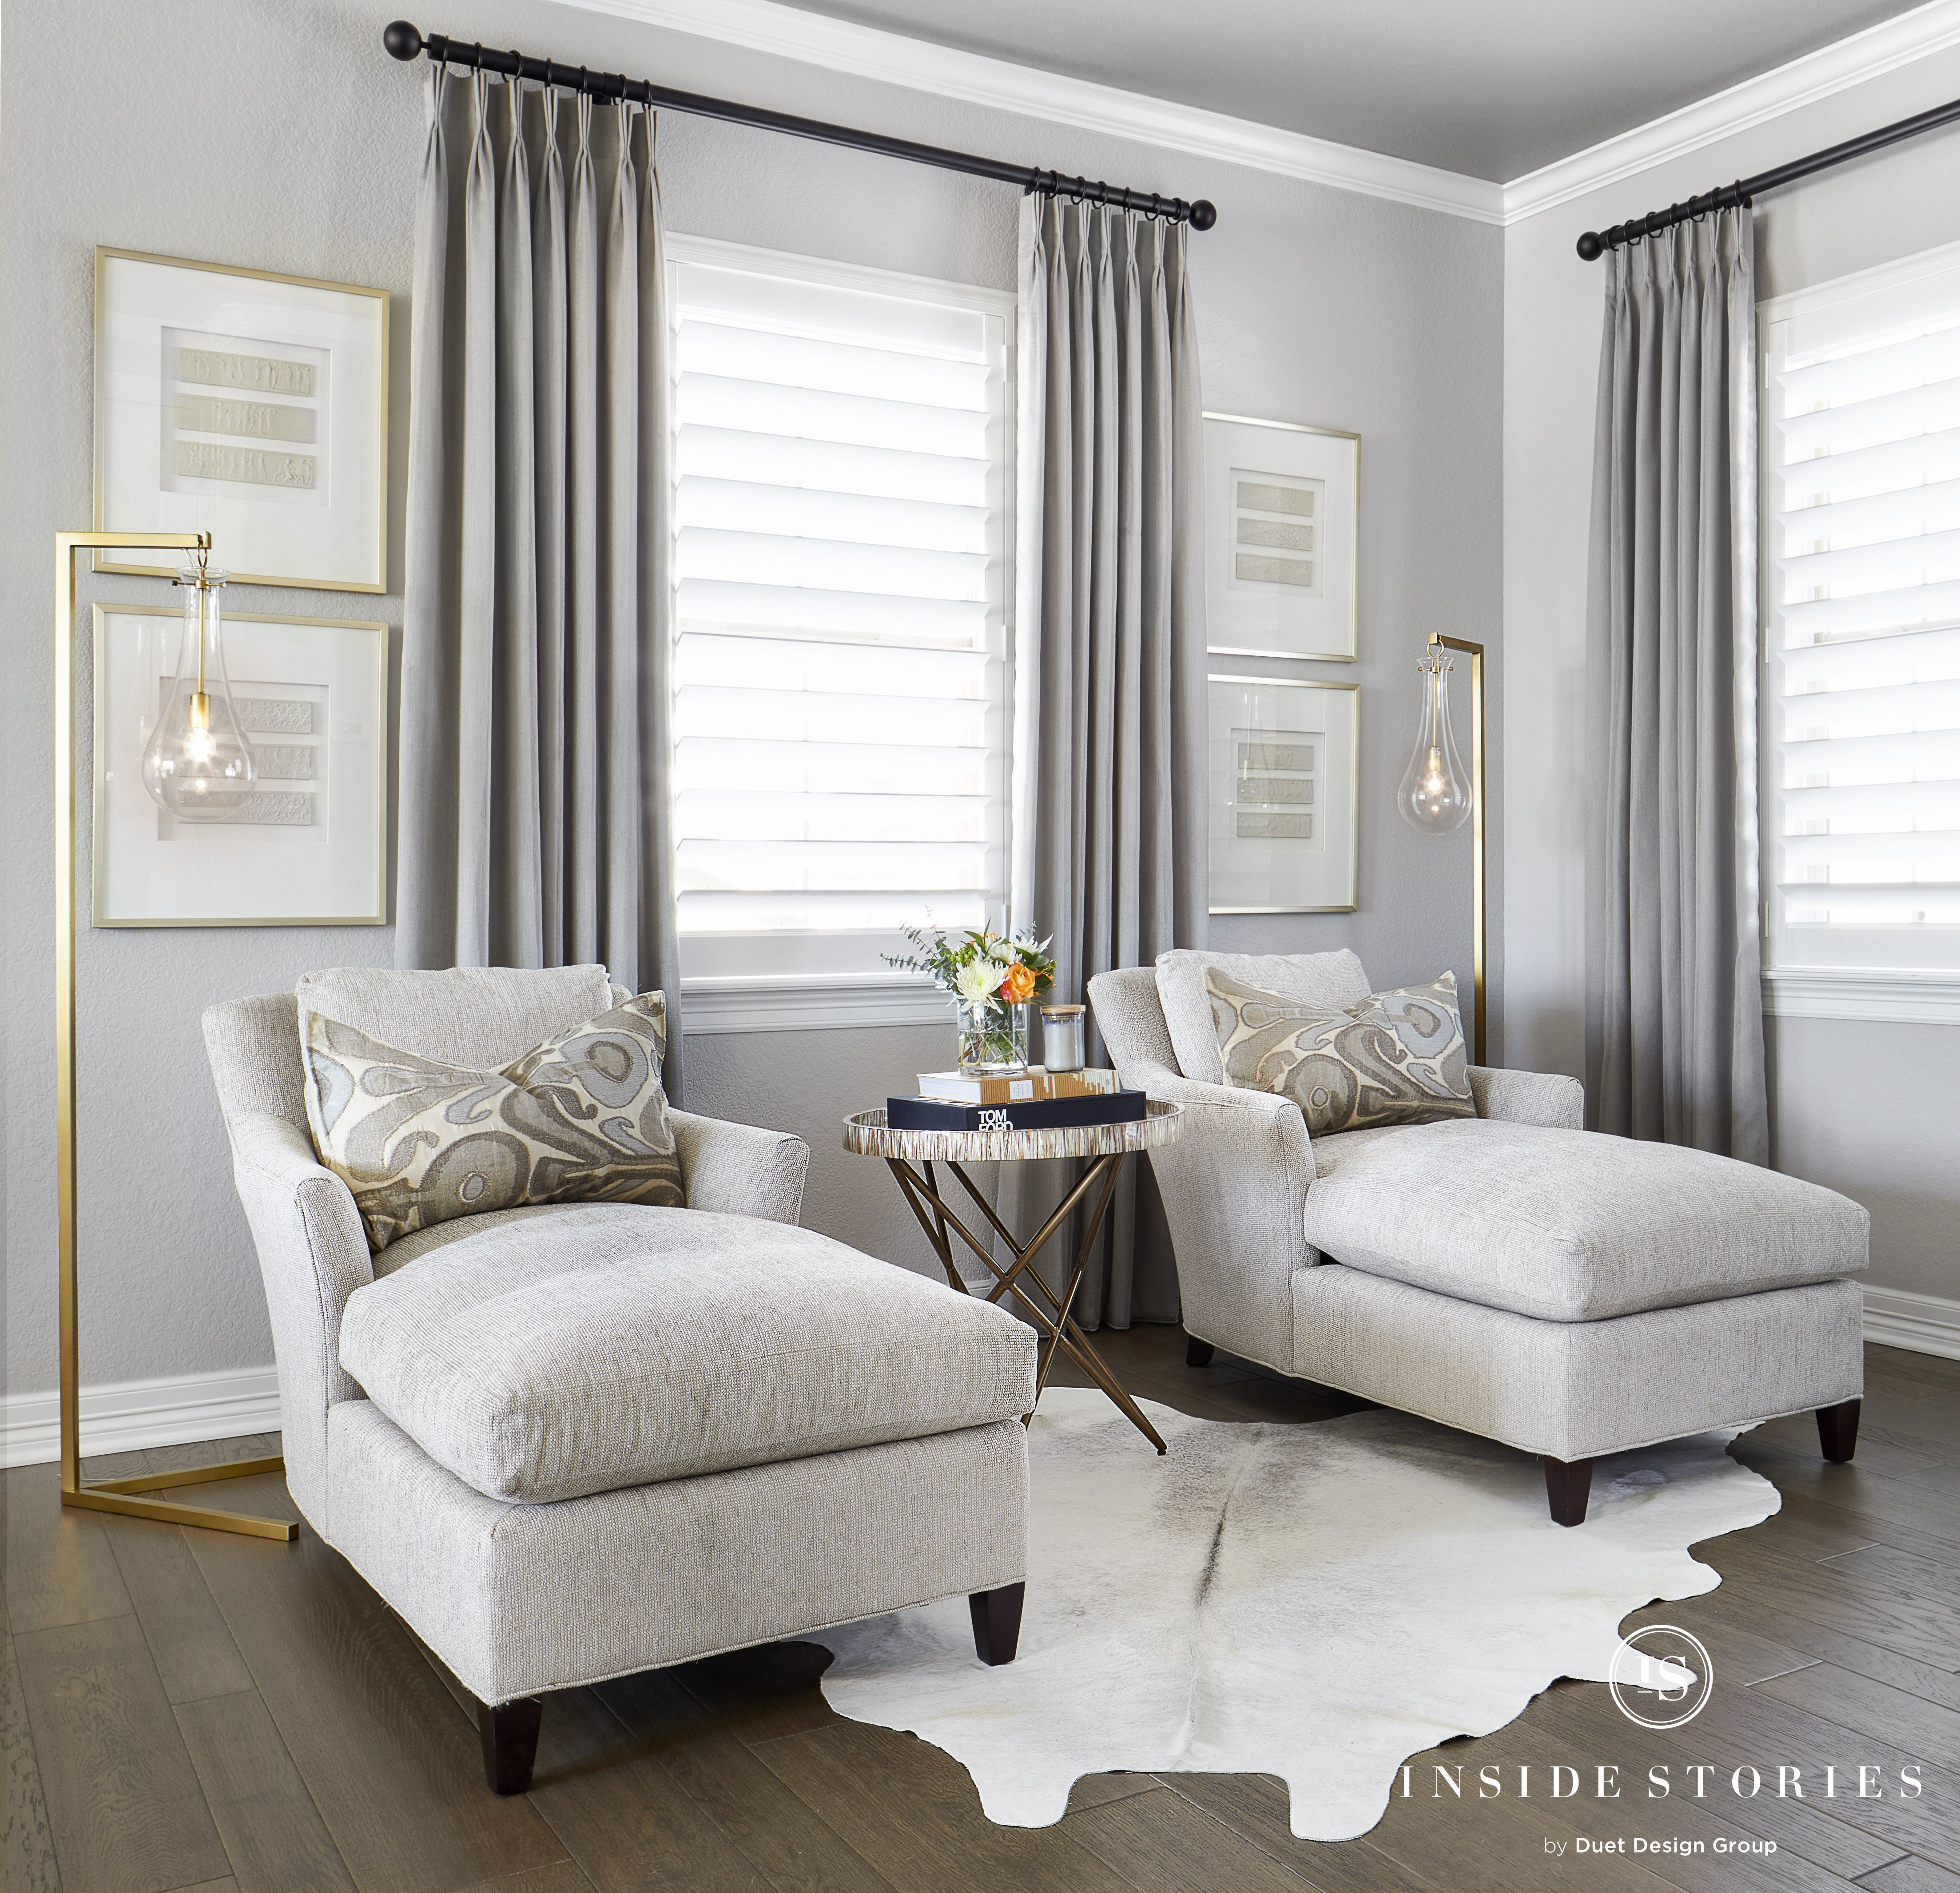 Remodels And Restorations Chaise Lounge Bedroom Master Suite Chaise Lounge Bedroom In 2020 Bedroom Seating Area Bedroom With Sitting Area Bedroom Sitting Room